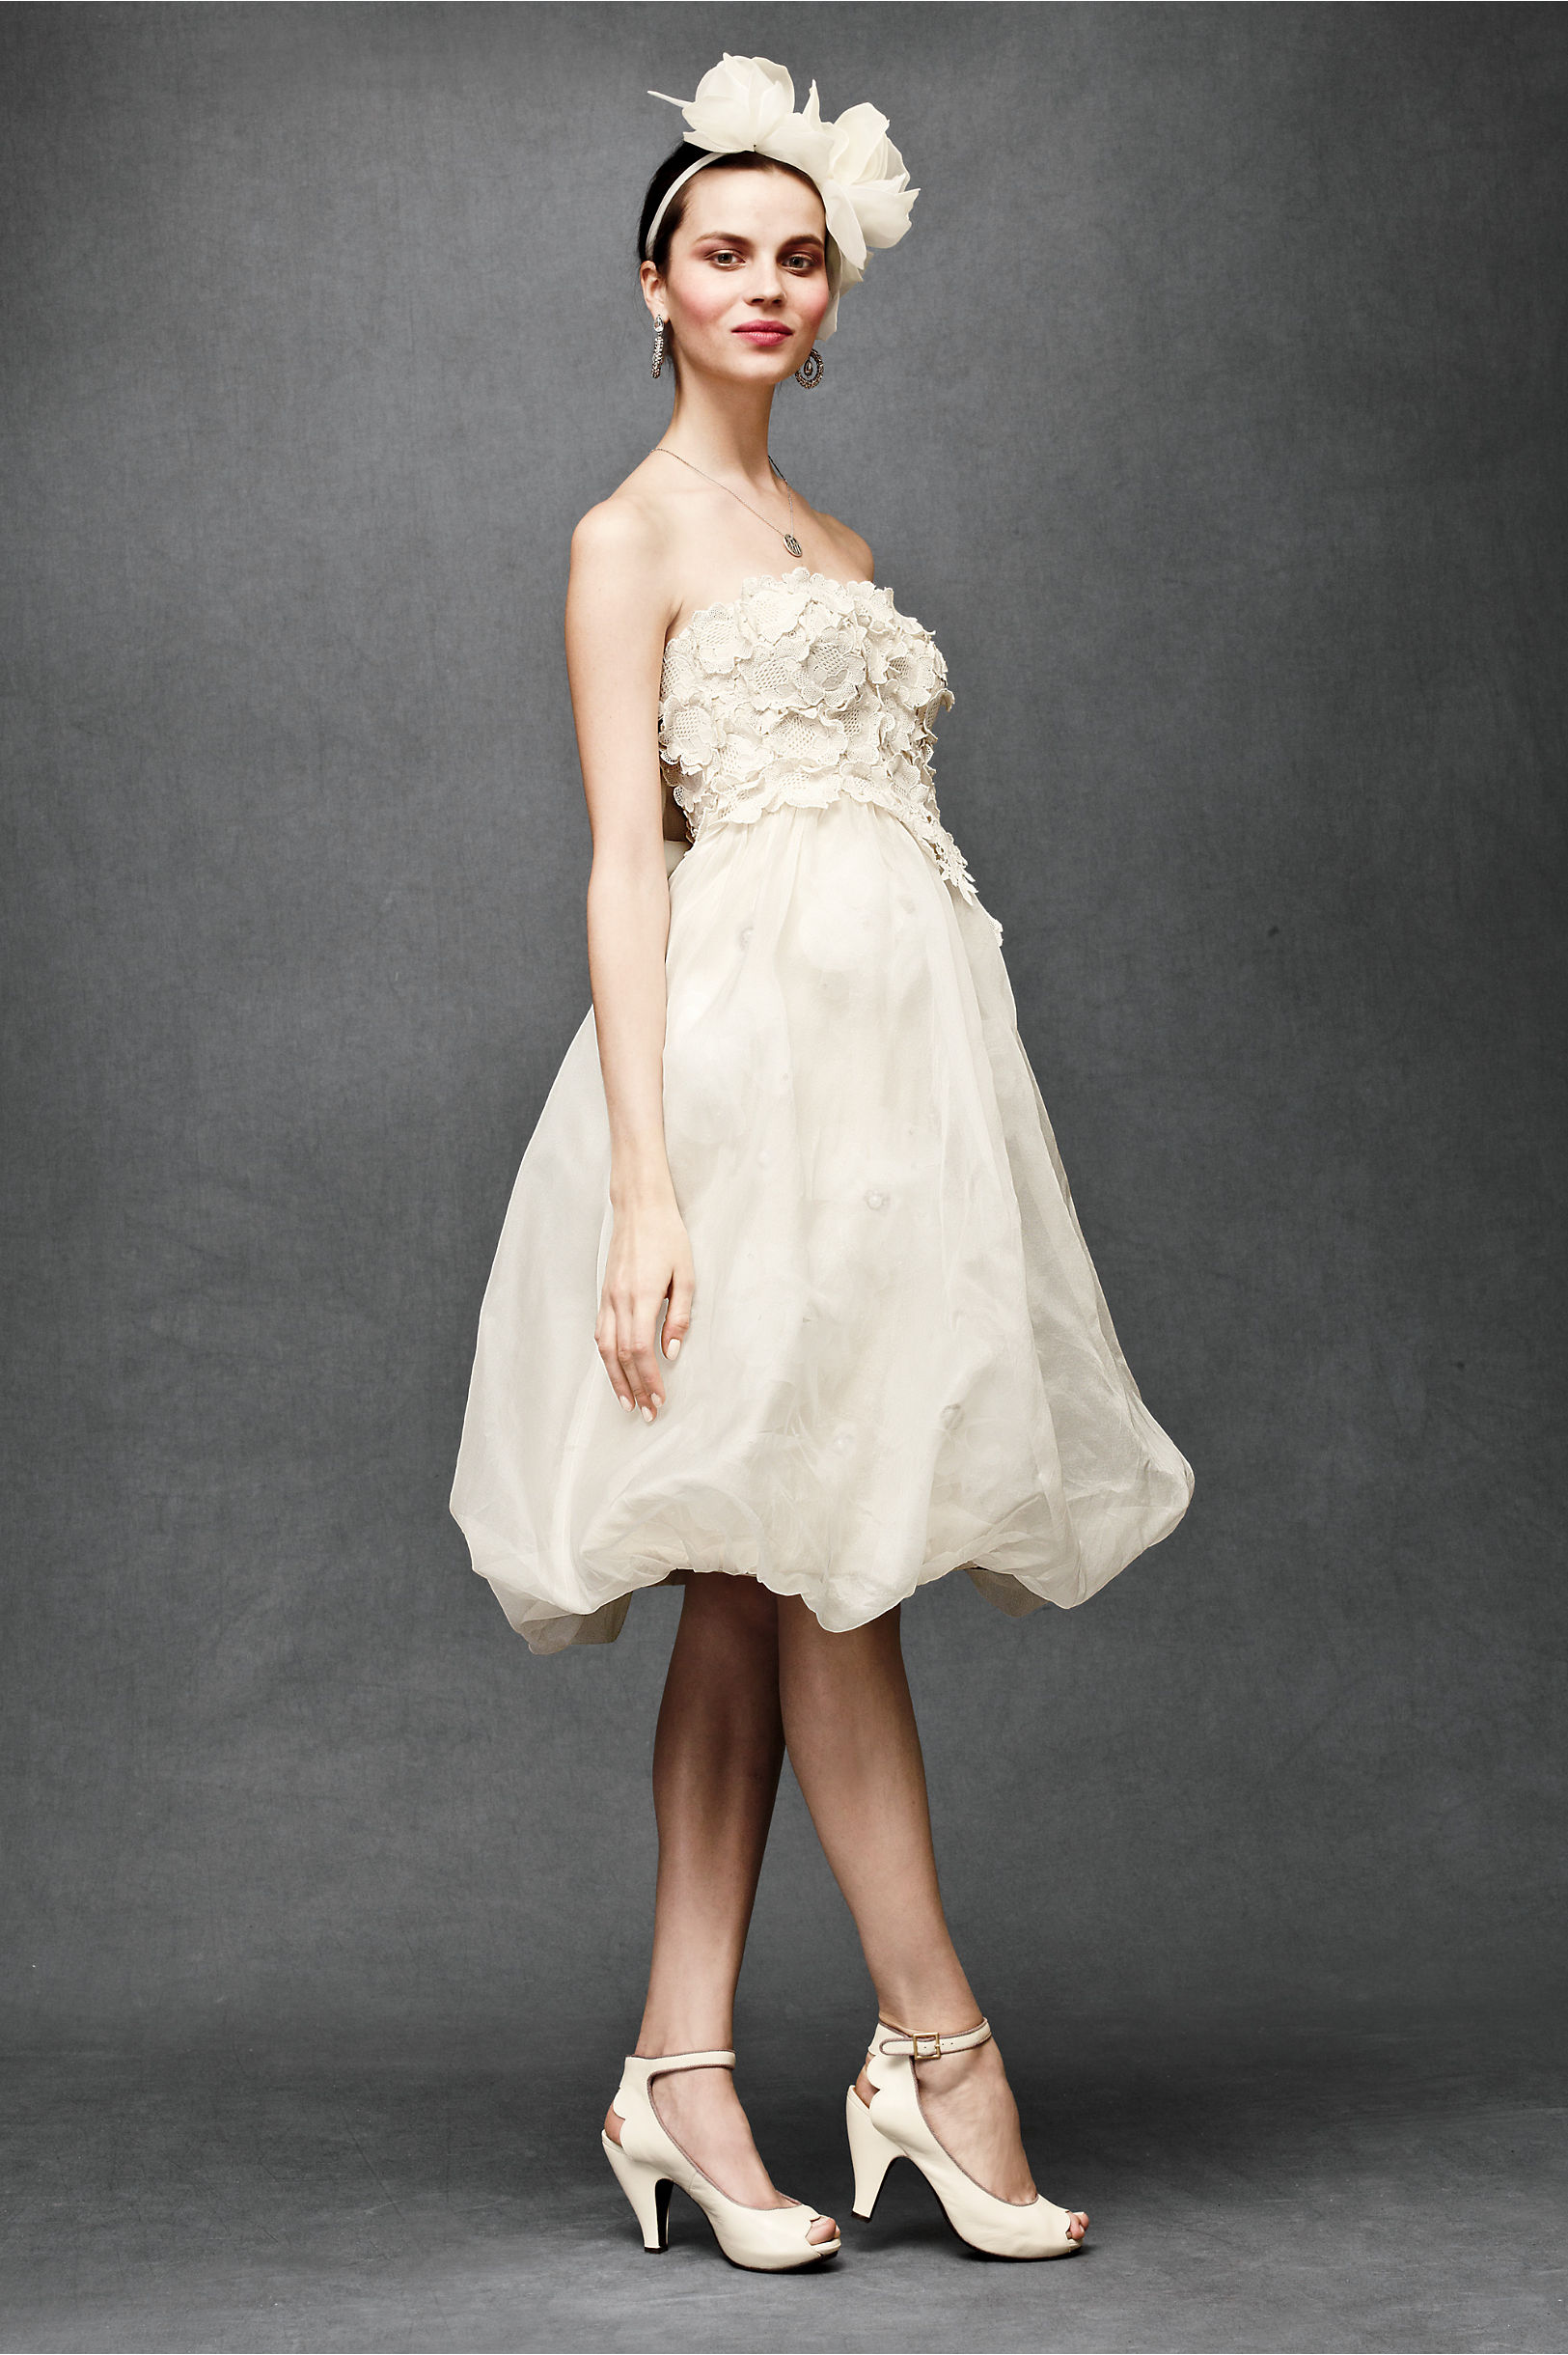 Floral artwork dress in bride bhldn parchment floral artwork dress bhldn ombrellifo Image collections